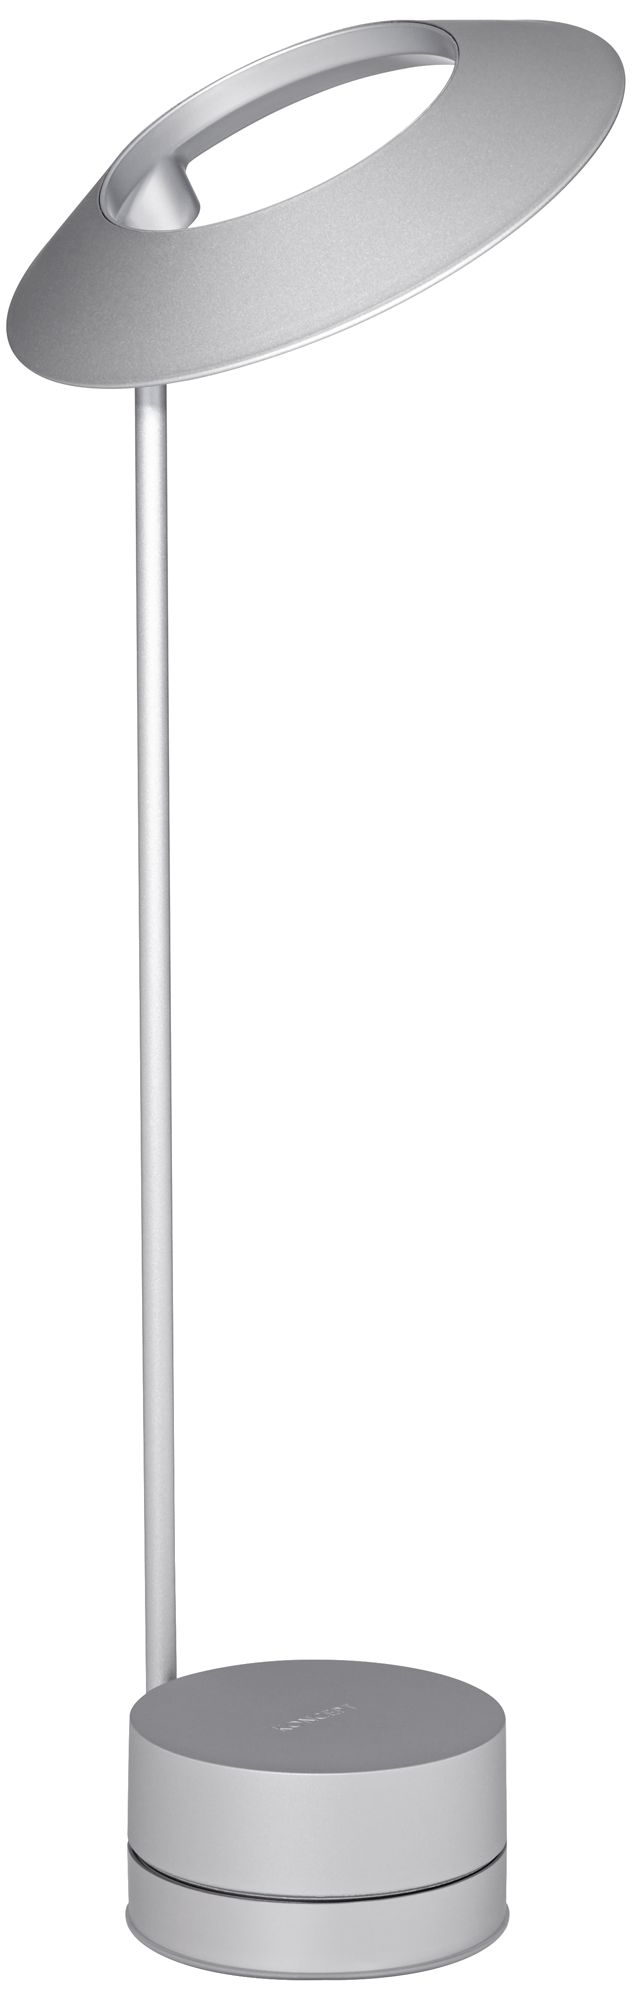 koncept occo silver led desk lamp with usb port